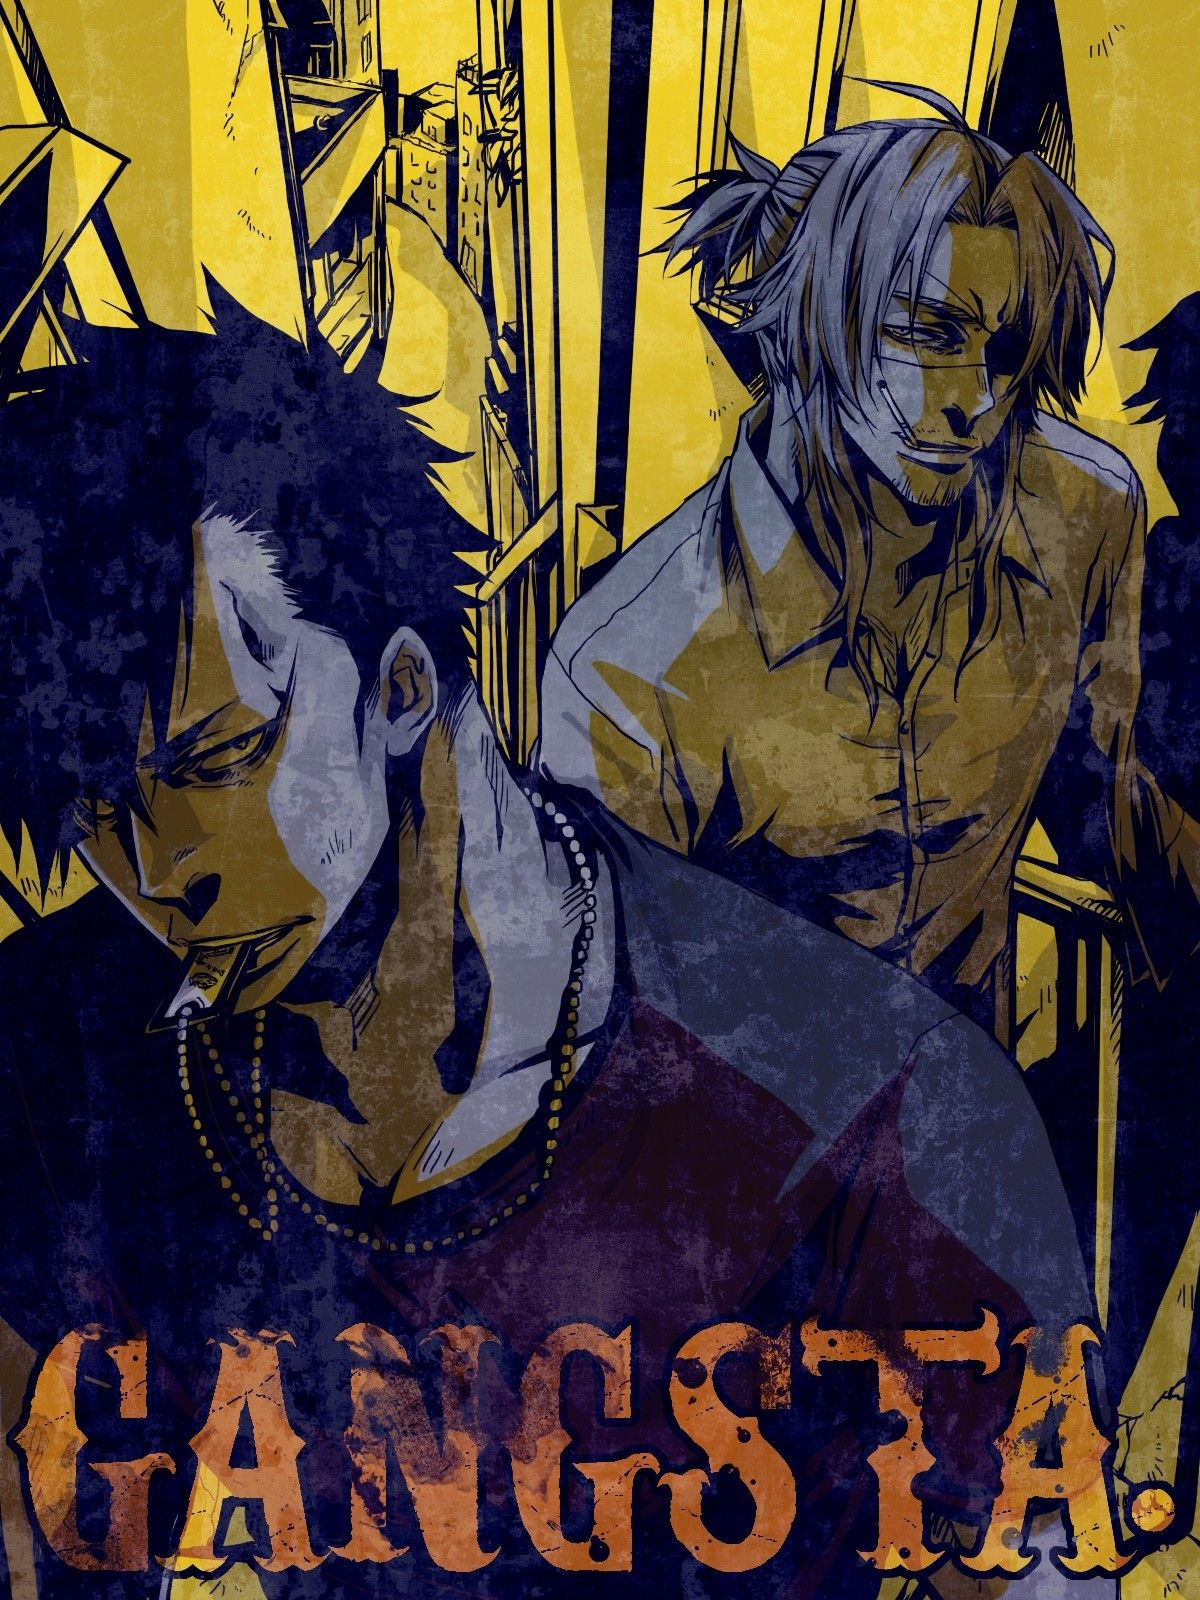 Pin by Smile BeNormal on gangsta. Gangsta anime, Anime